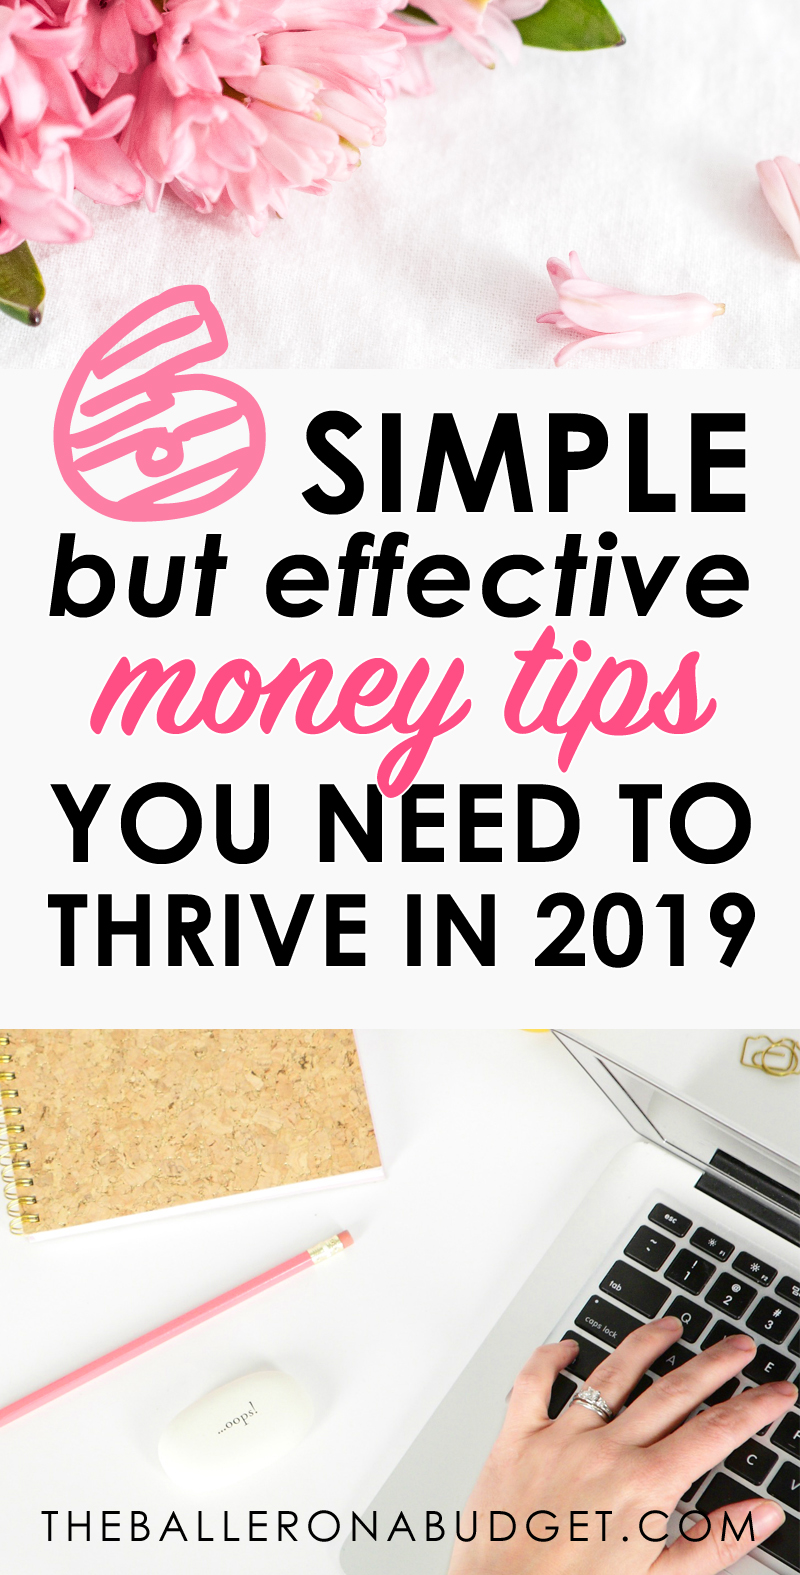 Saving money is one of those things that we always talk about when it's a few days before payday or moments after blowing that same check in one mall trip. Make 2019 your year of meeting your savings goals and preparing for the future. With these smart spending and saving tips, you'll be well on your way to a flourishing savings account and a financially stable future. - www.theballeronabudget.com